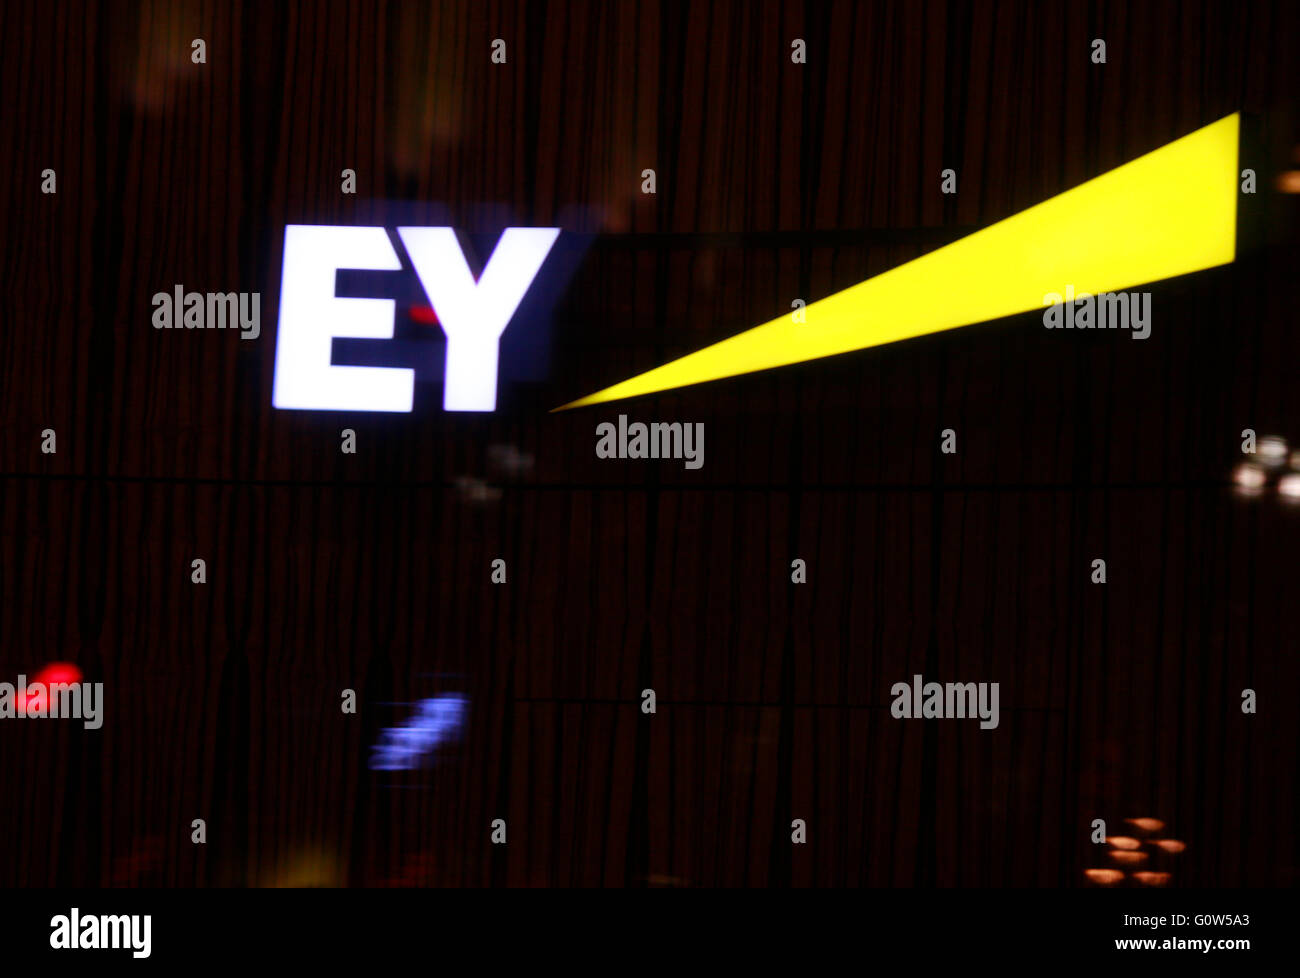 das Logo der Marke 'EY Ernst and Young', Berlin. - Stock Image